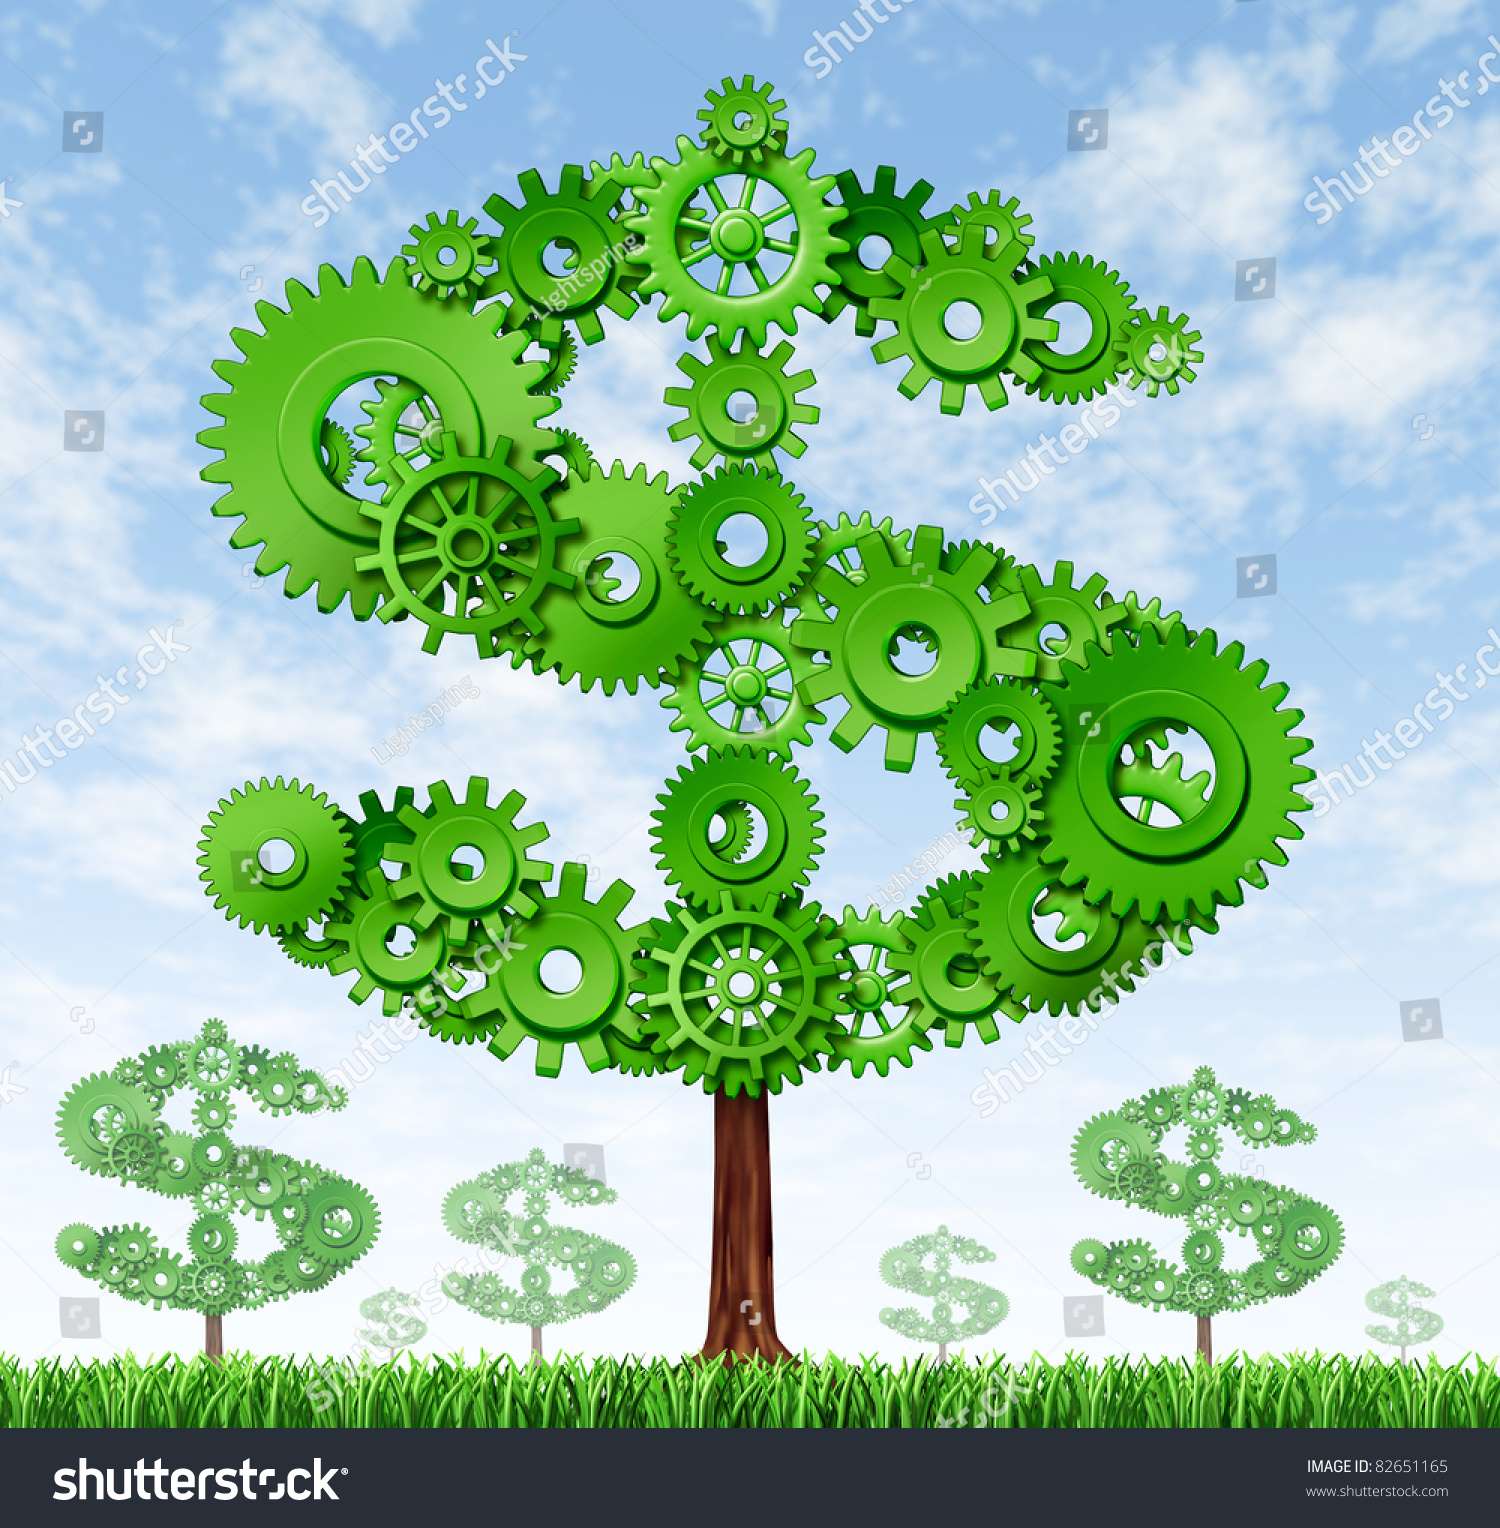 Making Money And Building Wealth Symbol Represented By Growing Trees In The  Shape Of A Dollar